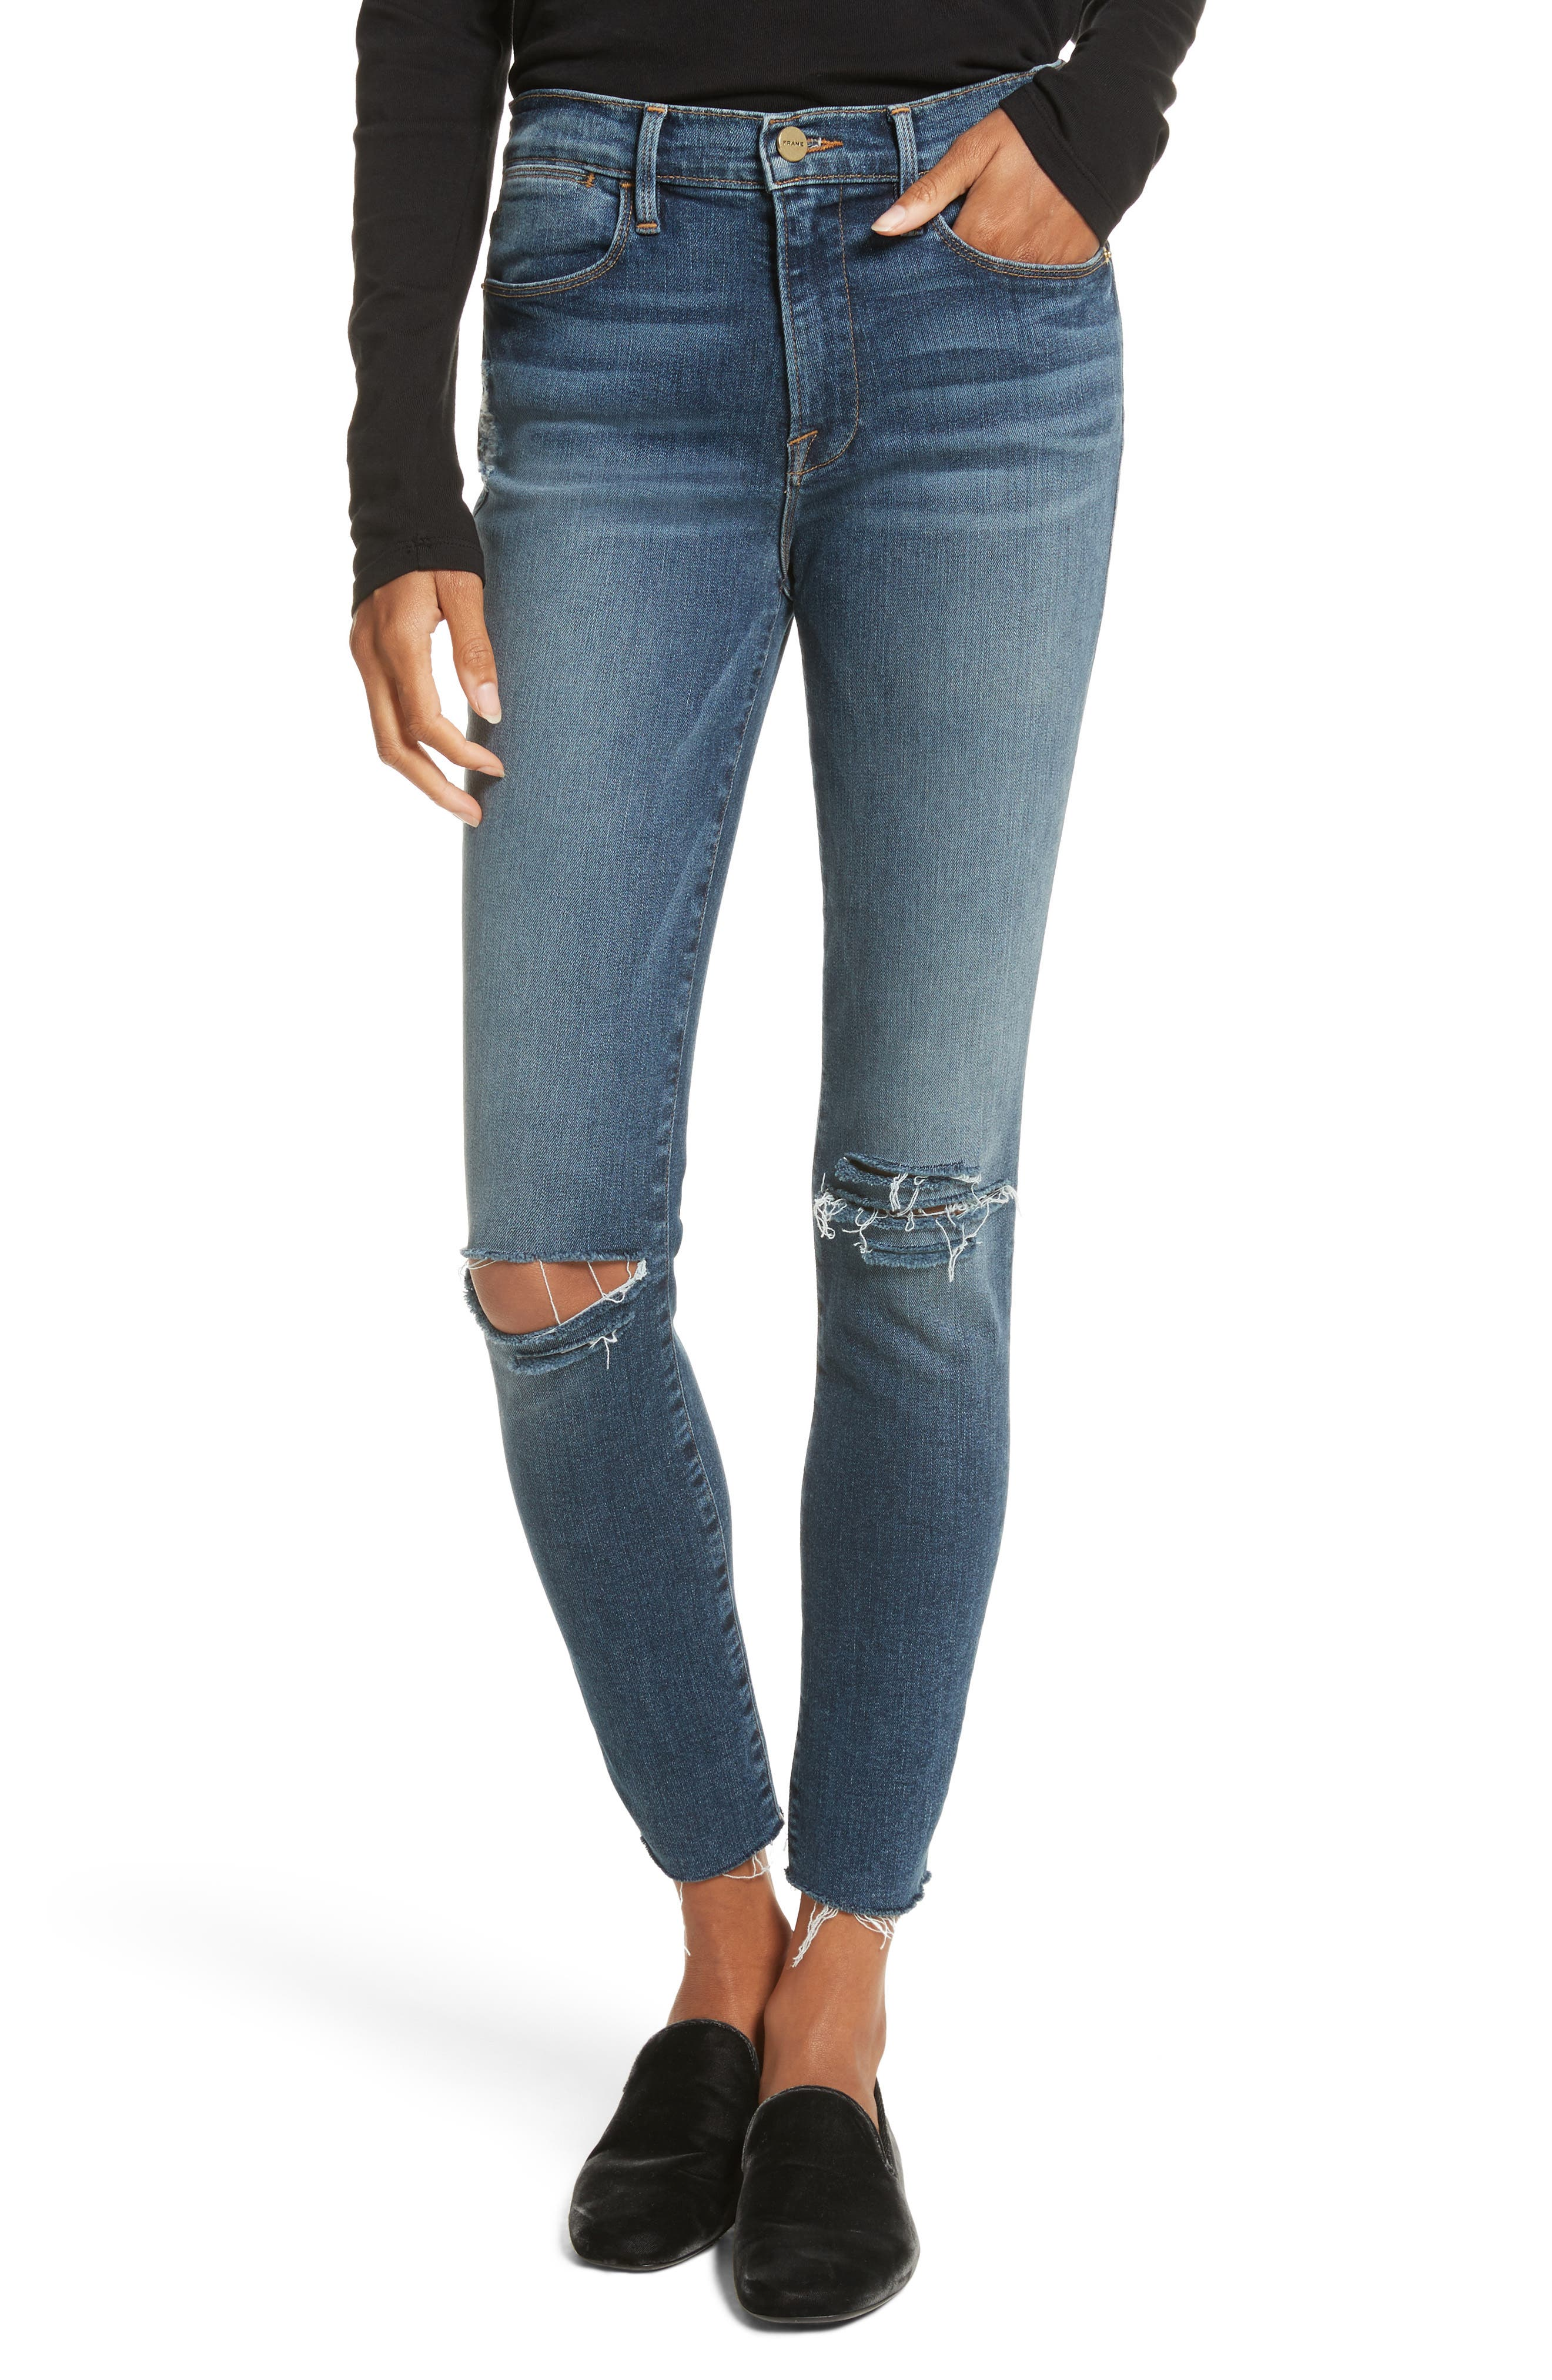 Alternate Image 1 Selected - FRAME Le High Raw Hem Skinny Jeans